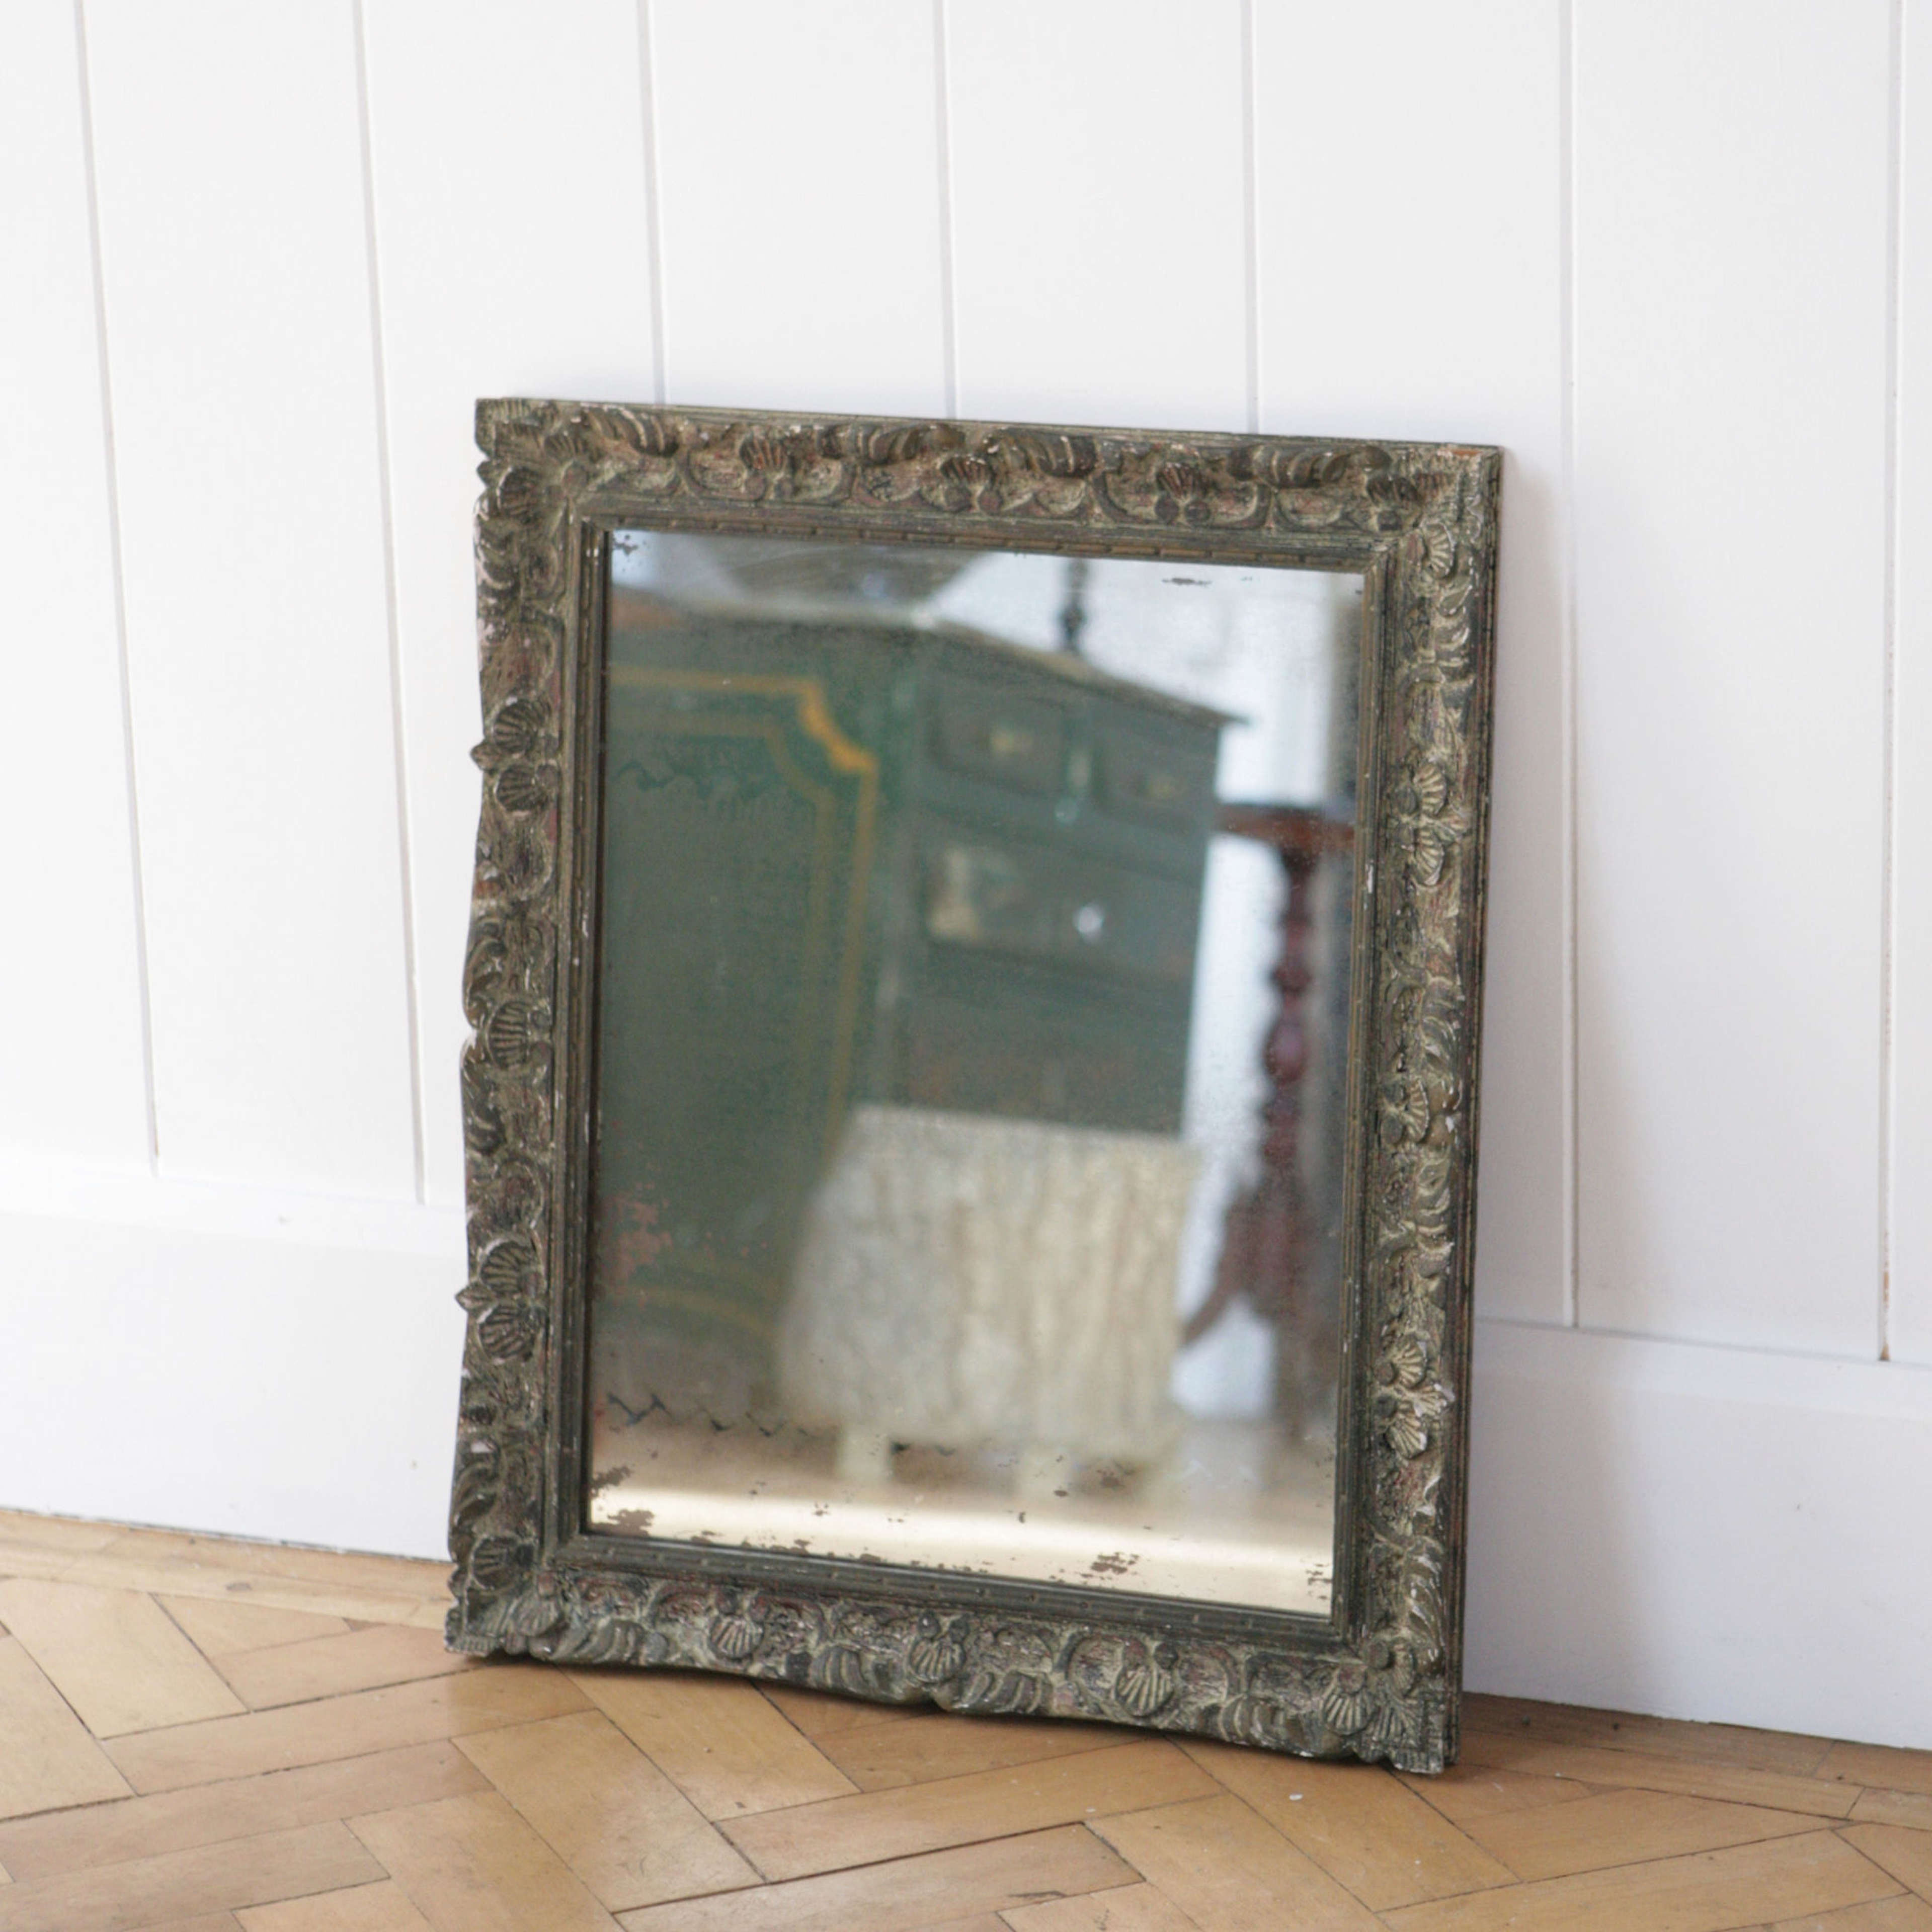 Early C20th Montparnasse mirror with original paint and plate.